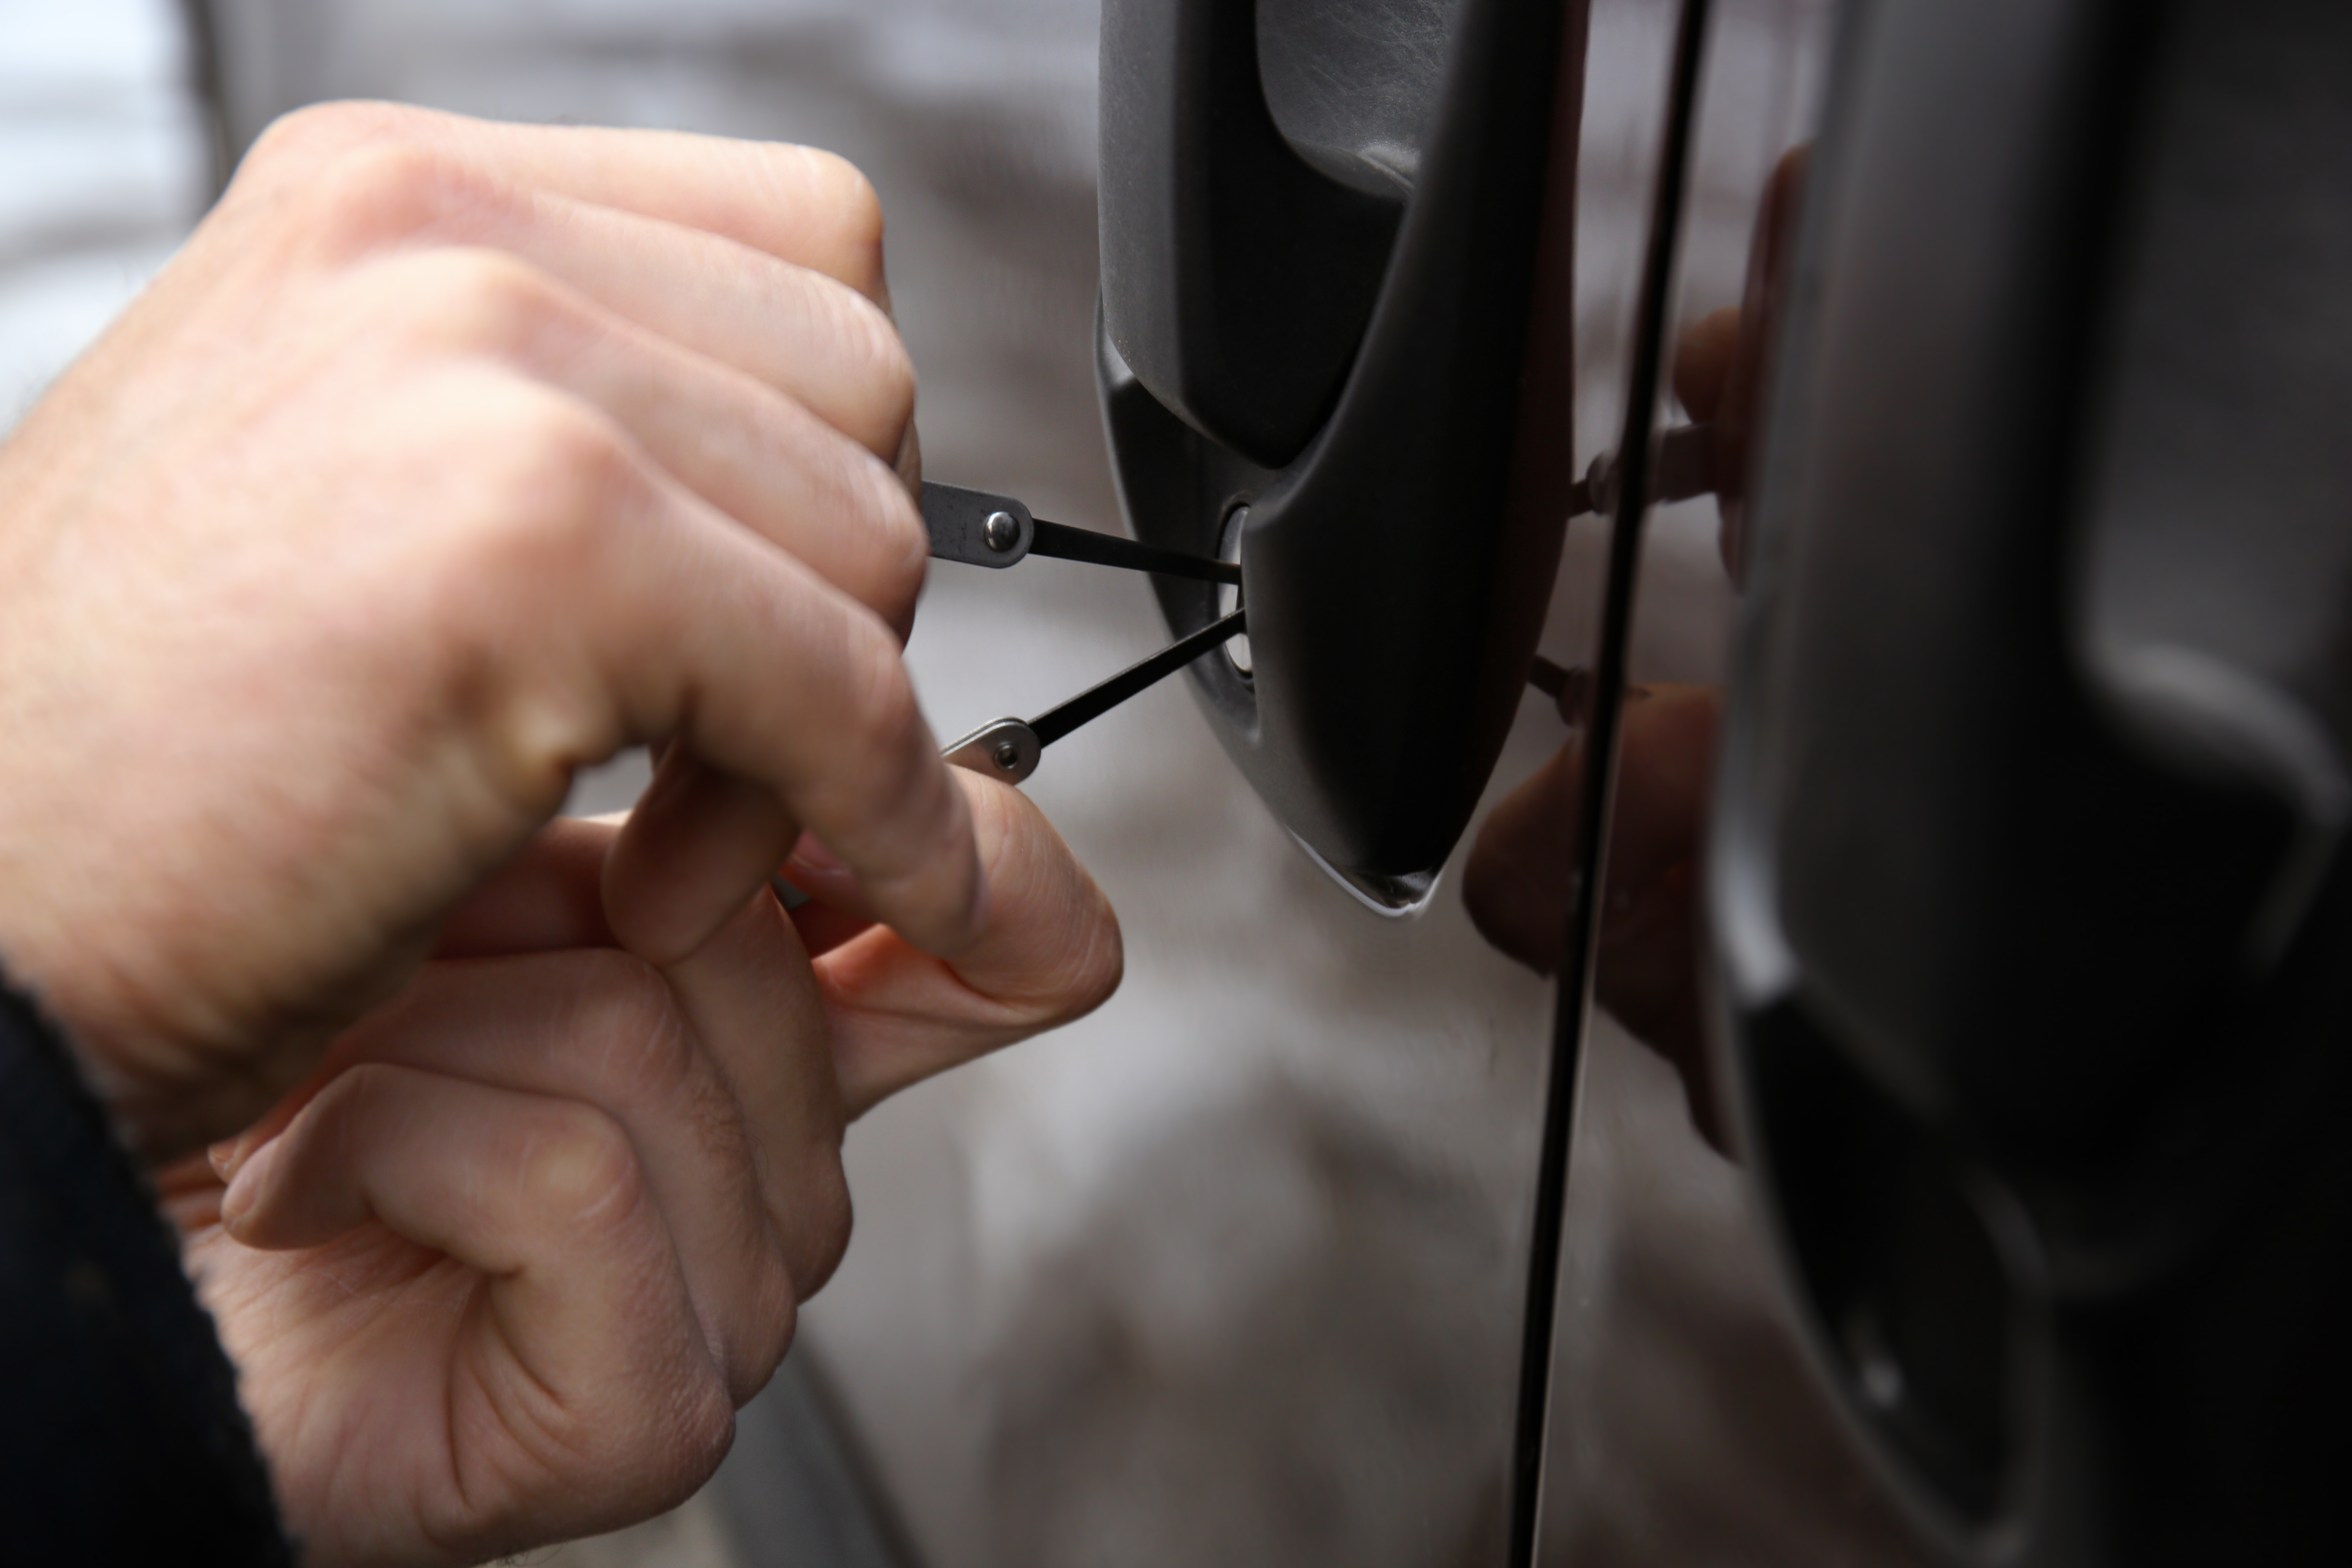 5 ways to unlock your car when locked out